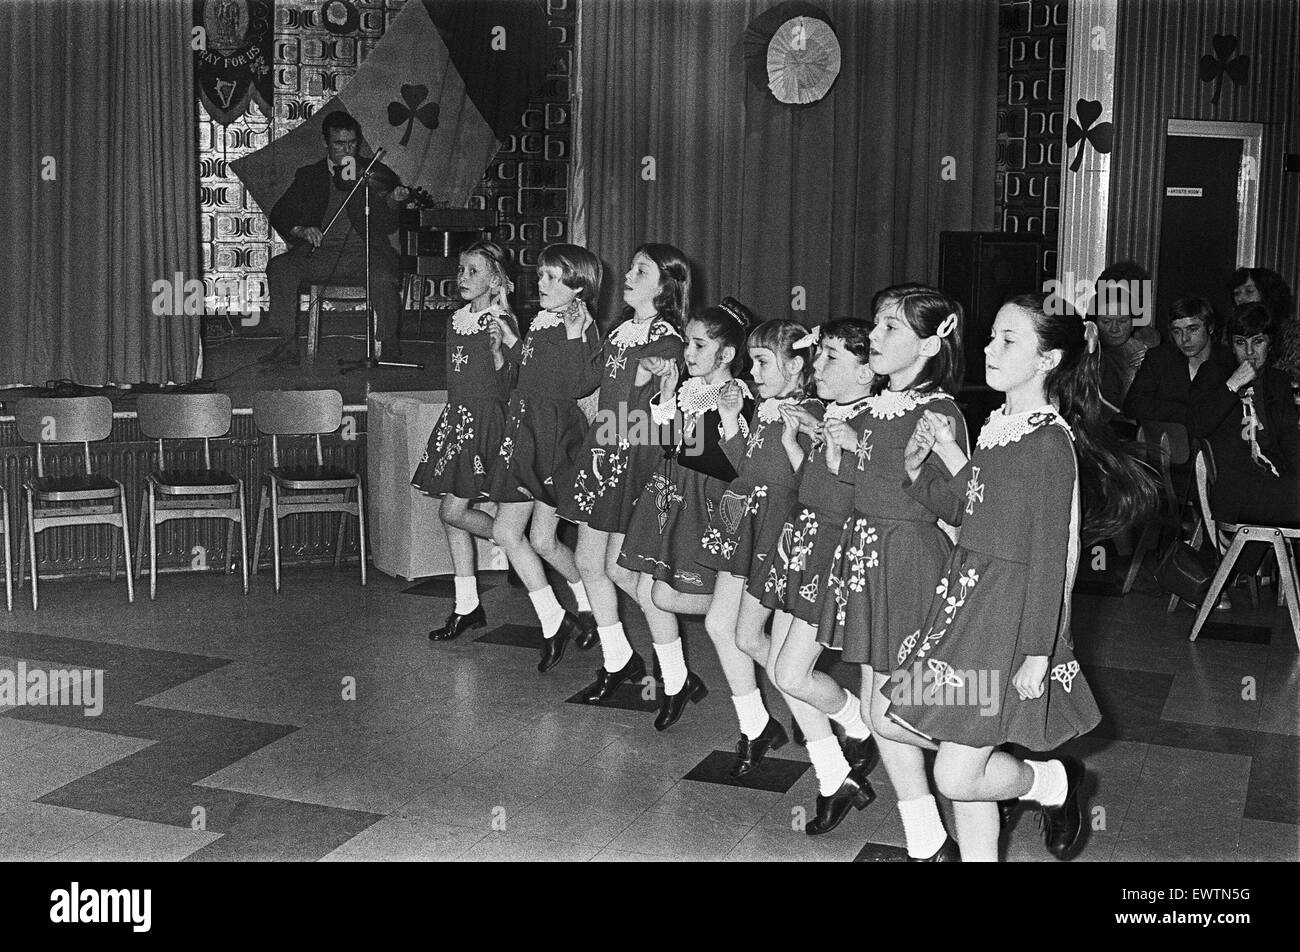 St Patrick's Day in Teesside, Girls dancing to Irish folk music. 17th March 1980 - Stock Image